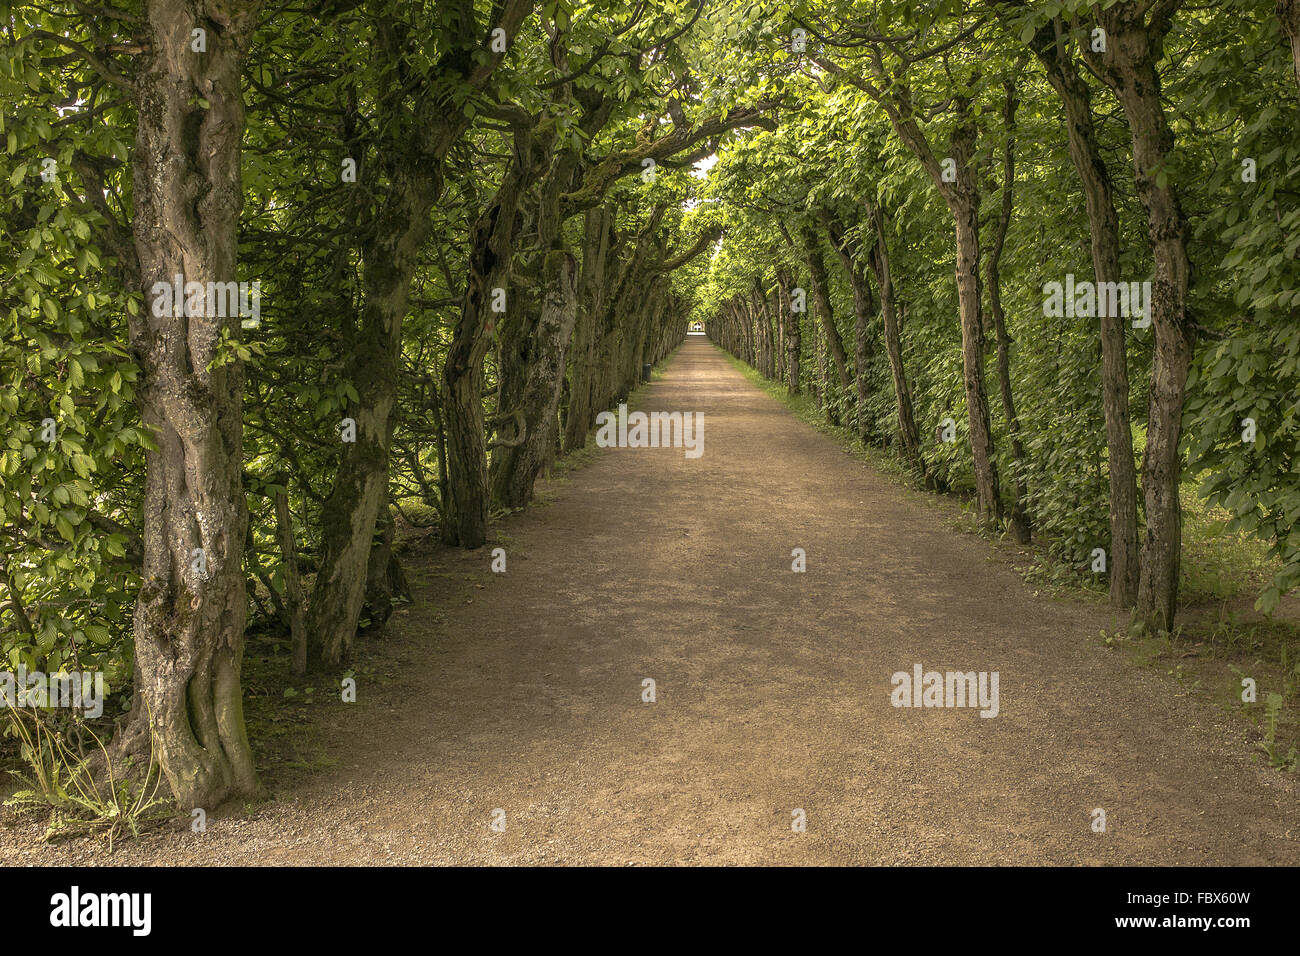 Hermitage in Bayreuth - arbor - Stock Image